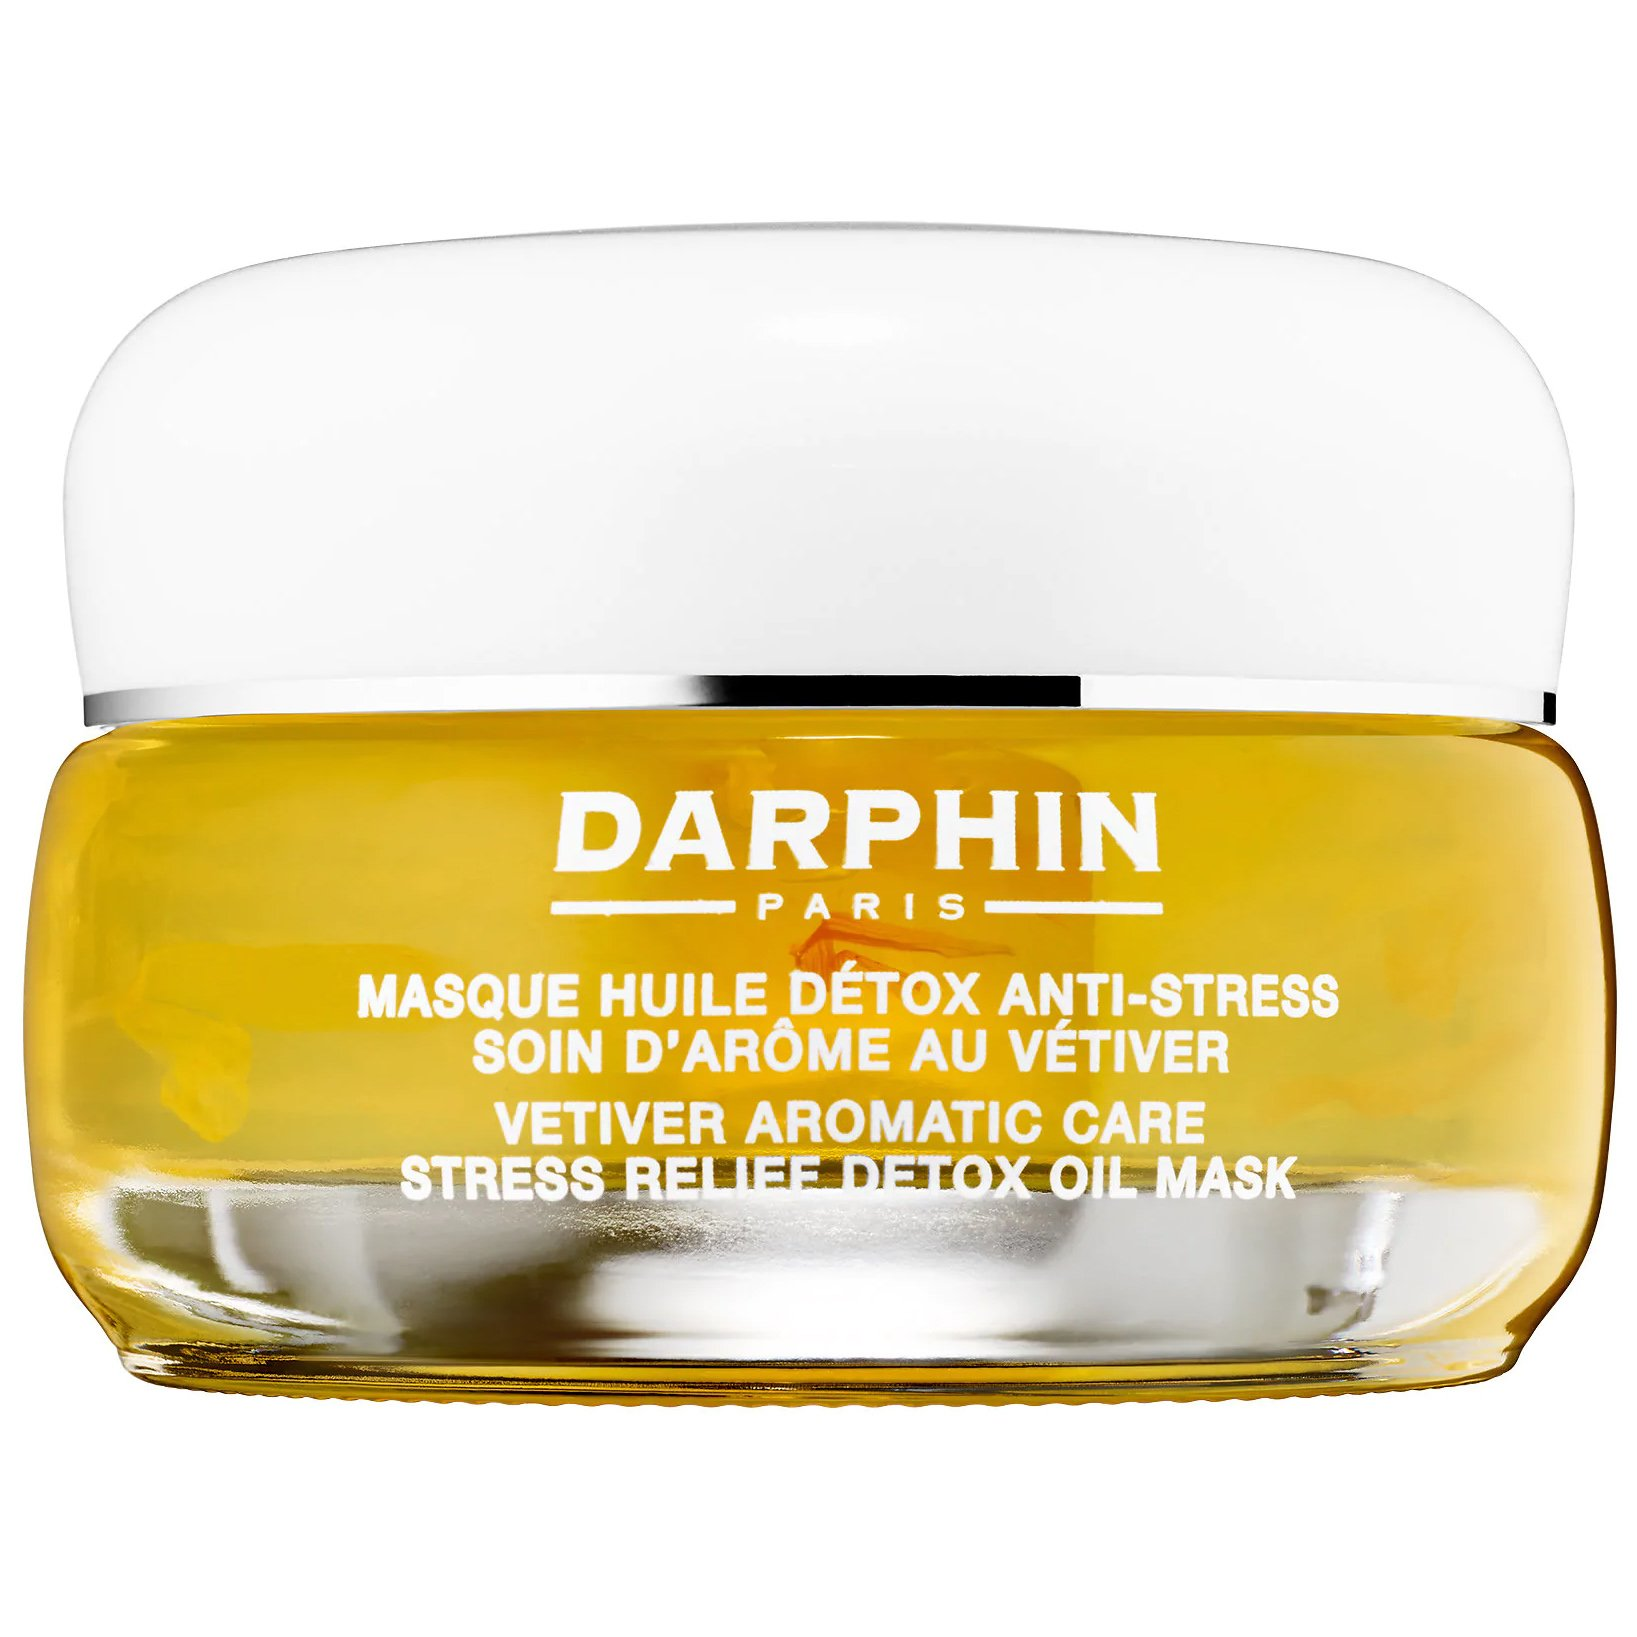 Darphin Essential Oil Elixir Vetiver Aromatic Care Stress Relief Dedox Oil Mask Μάσκα Αποτοξίνωσης με Χαλαρωτικές Ιδιότητες 50ml